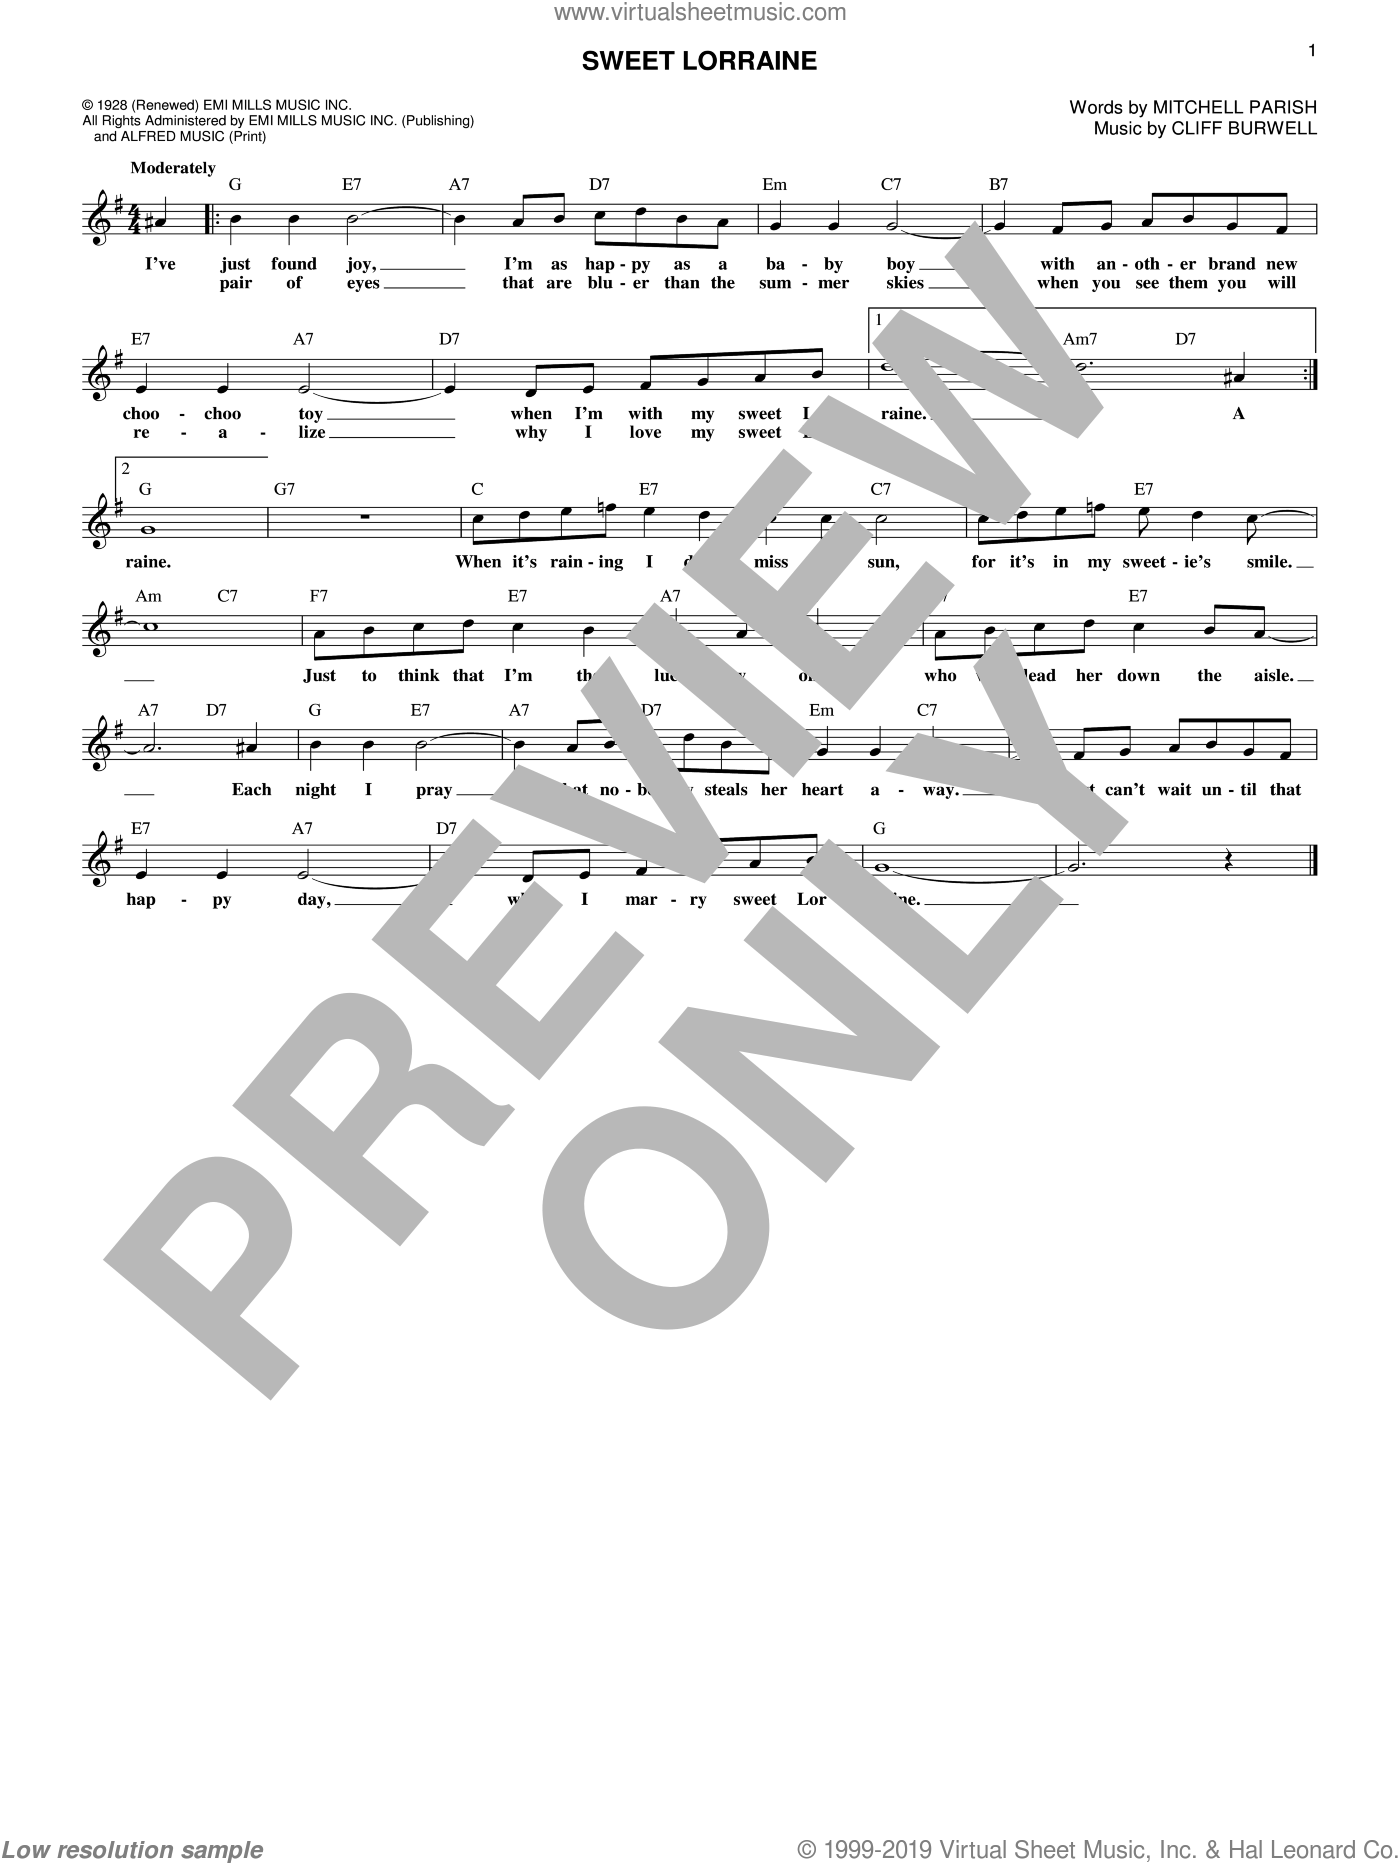 Sweet Lorraine sheet music for voice and other instruments (fake book) by Cliff Burwell and Mitchell Parish, intermediate skill level